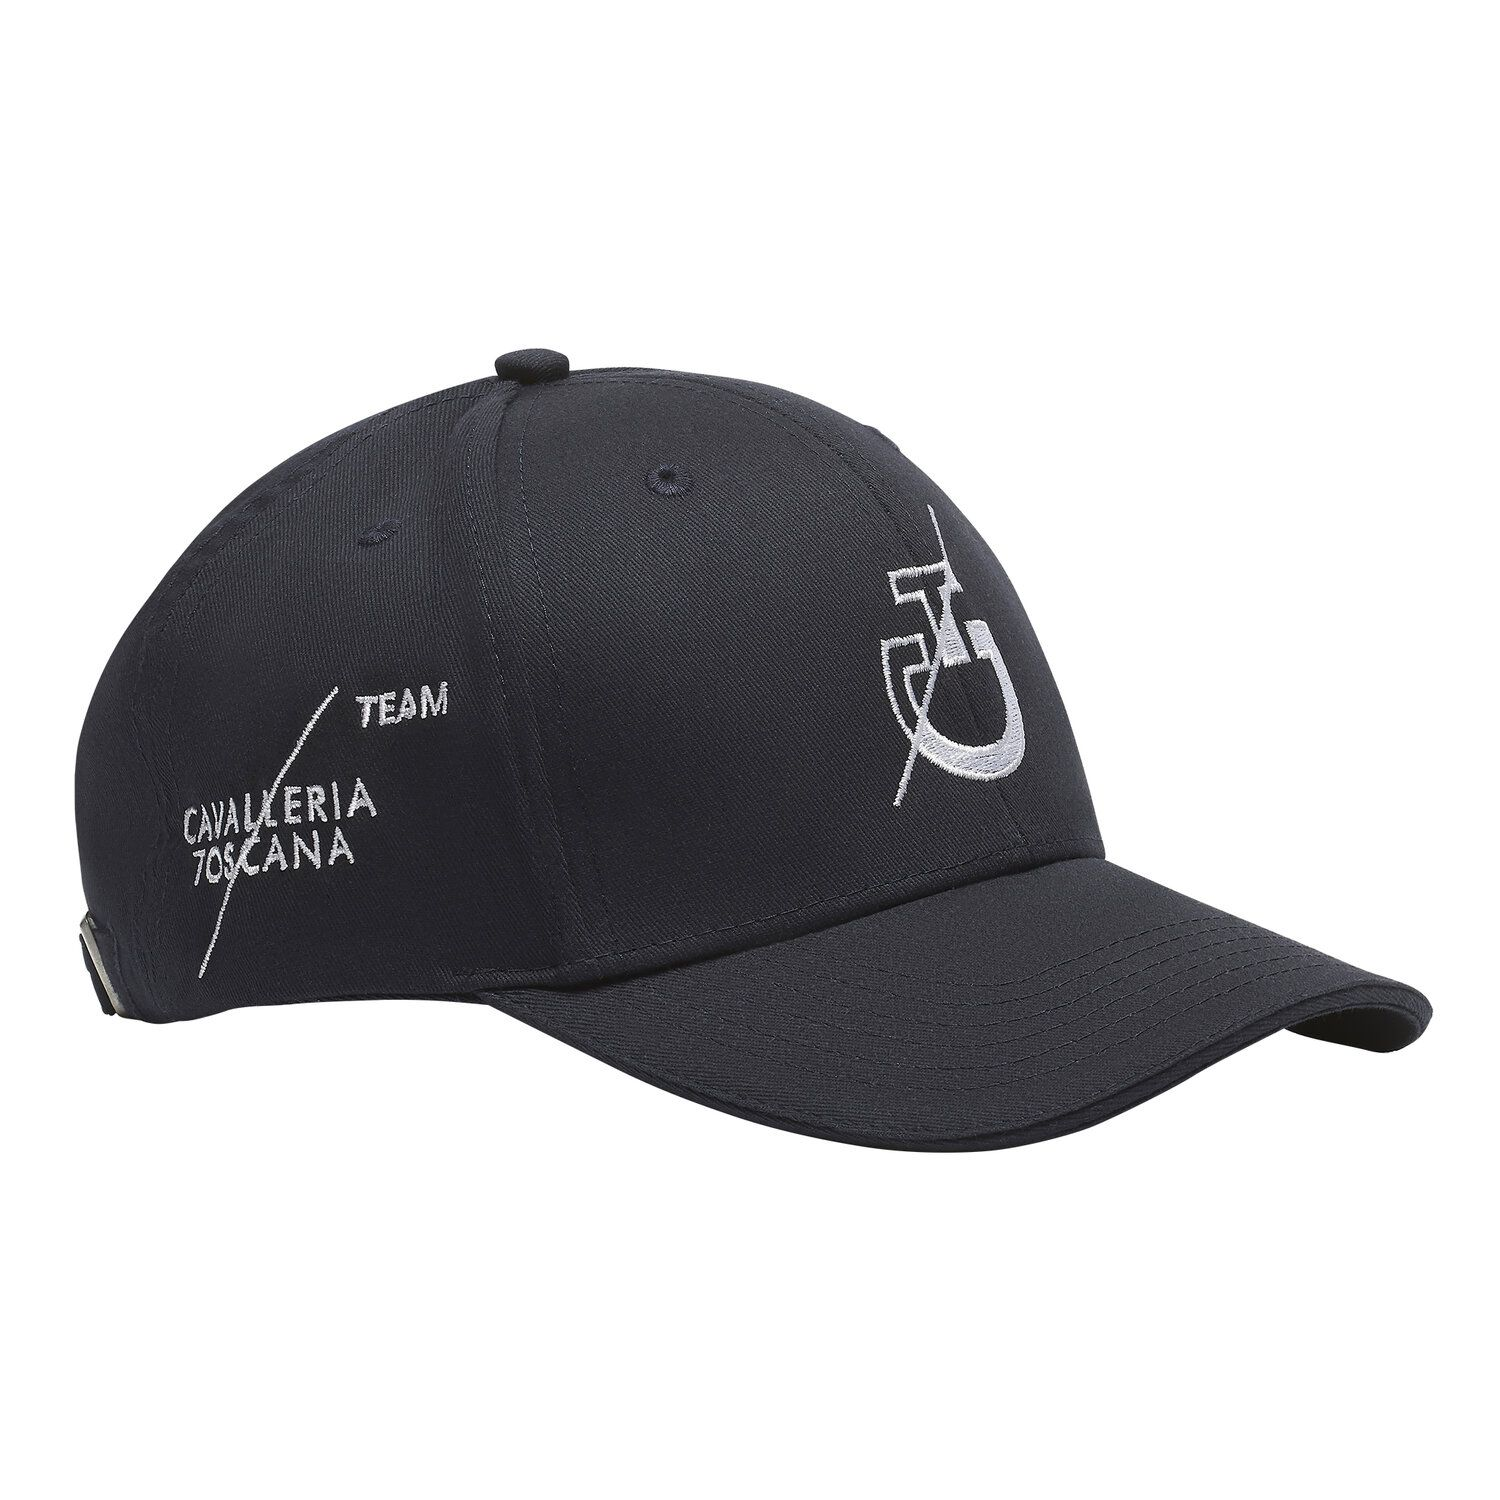 CT Team cotton cap